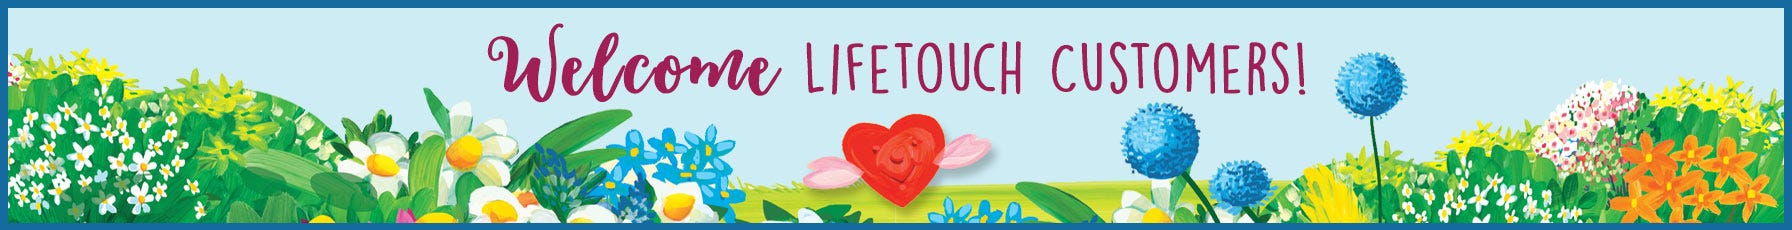 Welcome Lifetouch Customers!